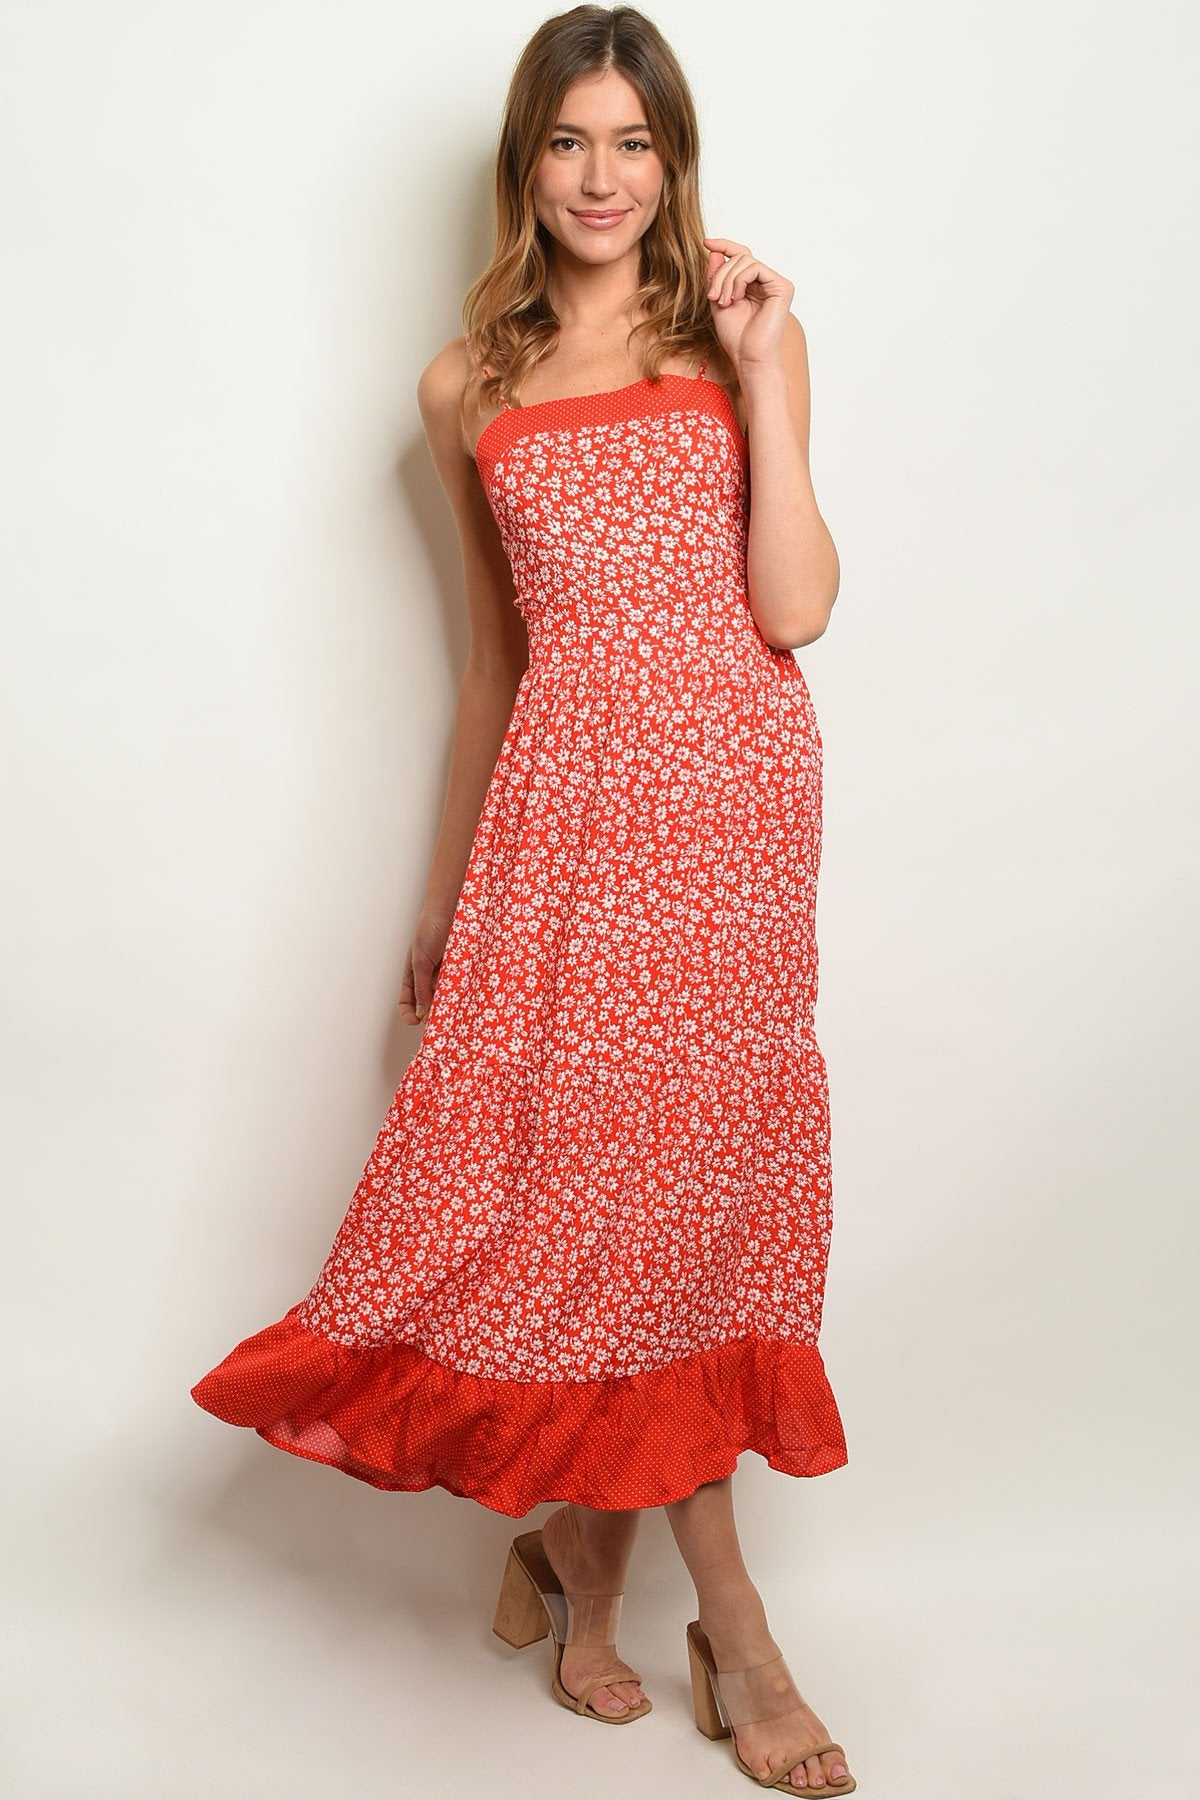 Red Ivory With Flowers Dress - Manifest Best Boutique